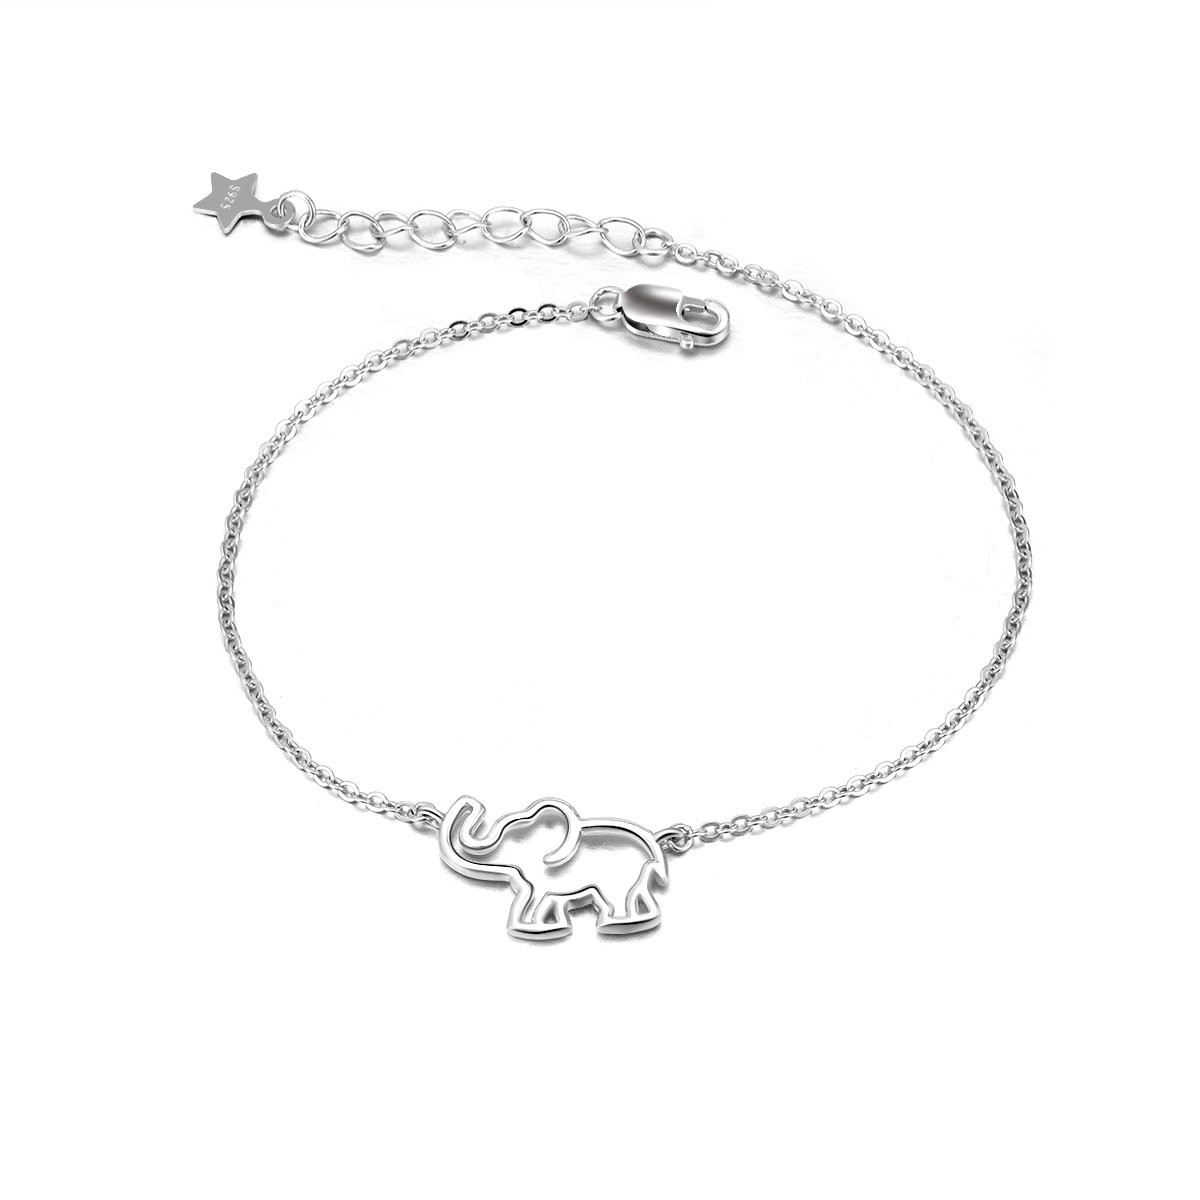 LUHE Elephant Bracelet Sterling Silver Adjustable Cable Chain Bracelets for Women